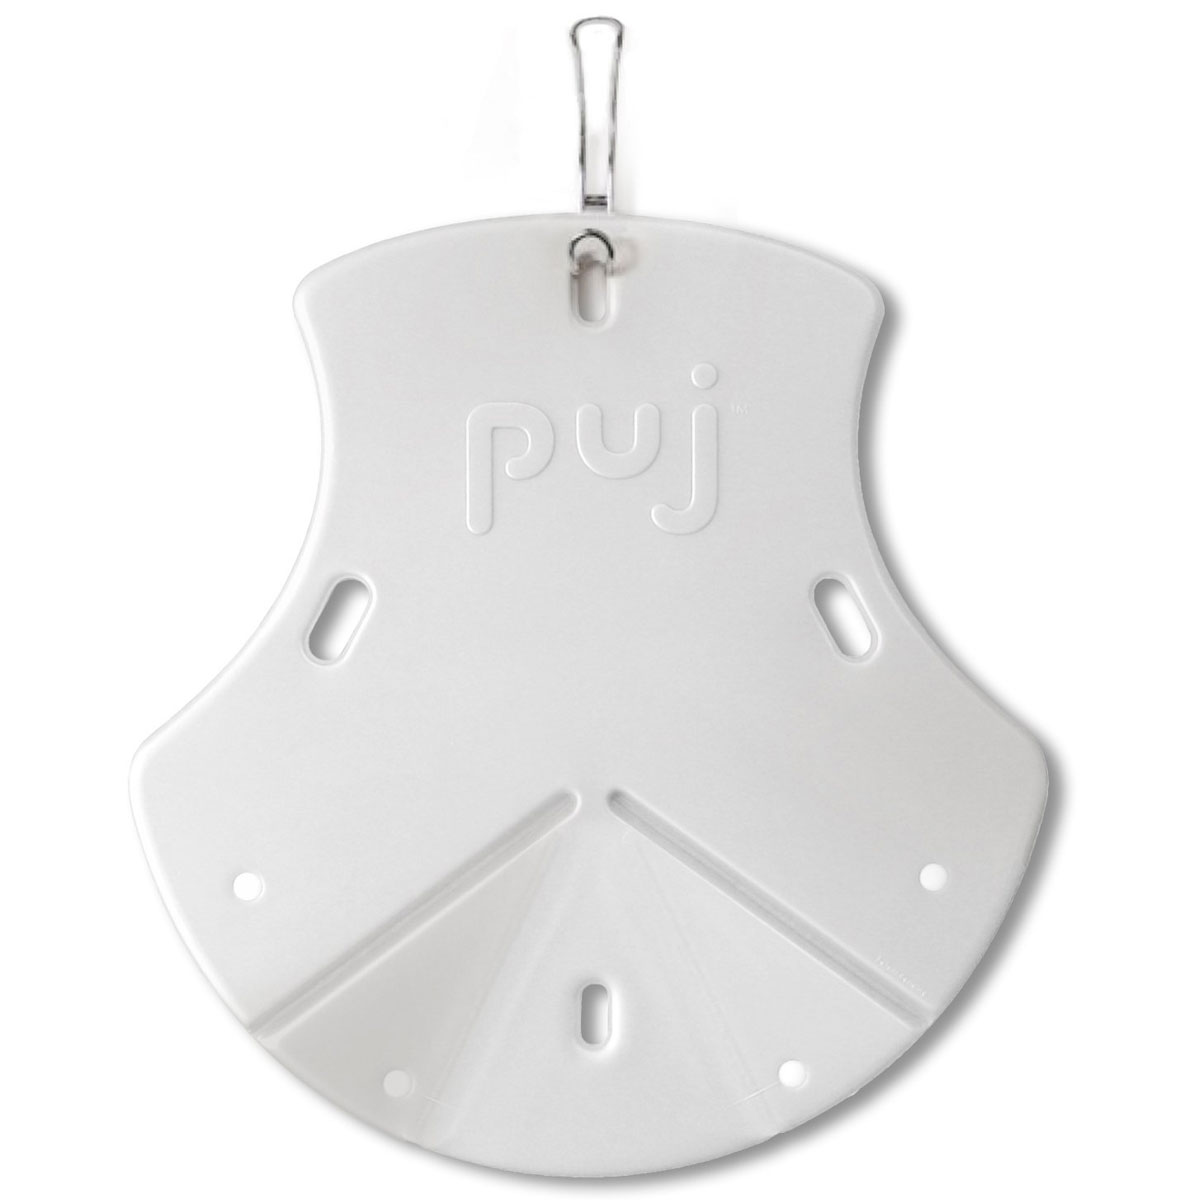 Puj Tub Soft Infant Tub